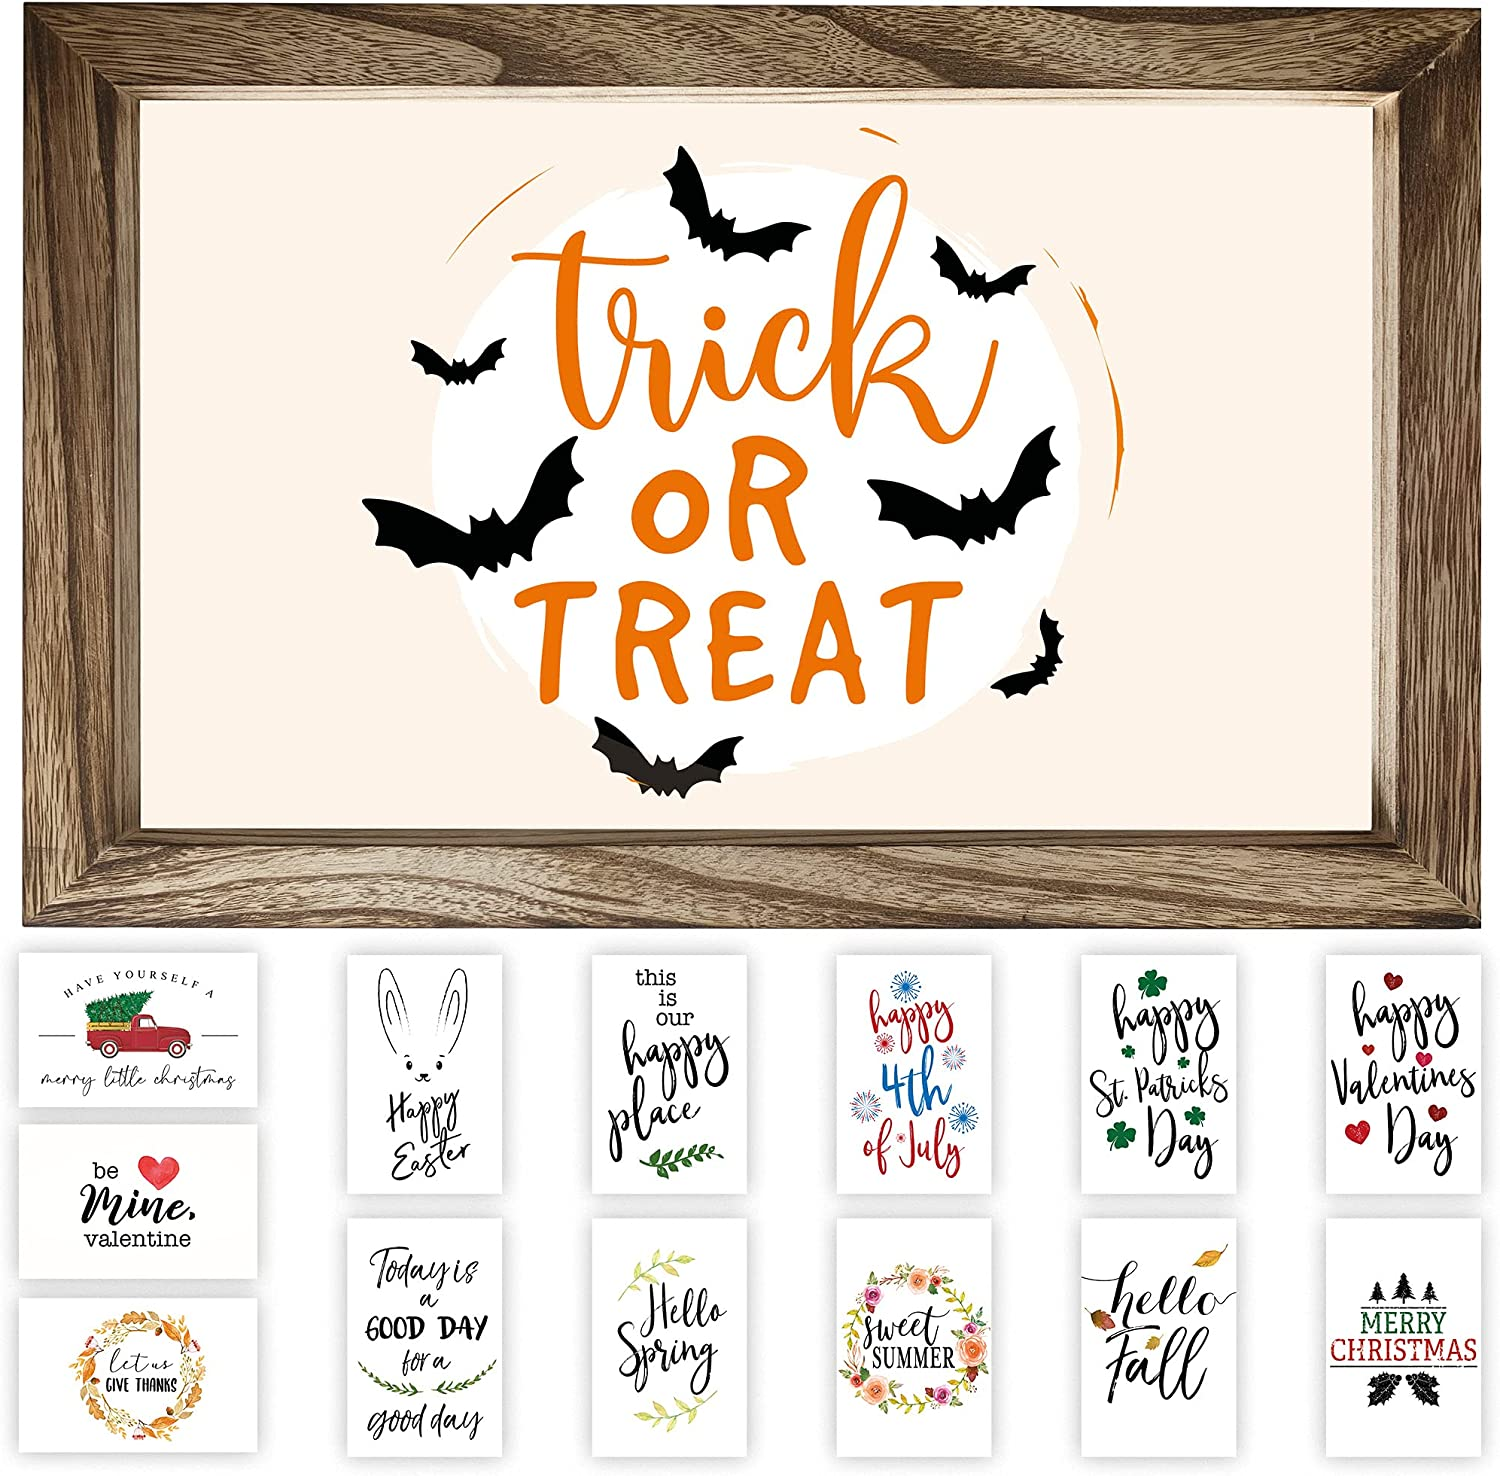 """Farmhouse Wall Decor Signs With 14 Interchangeable Sayings For Indoor Fall And Halloween Decor - 11x16"""" Rustic Wood Picture Frame with 14 Designs - Easy To Hang Thanksgiving Decorations For Your Home"""